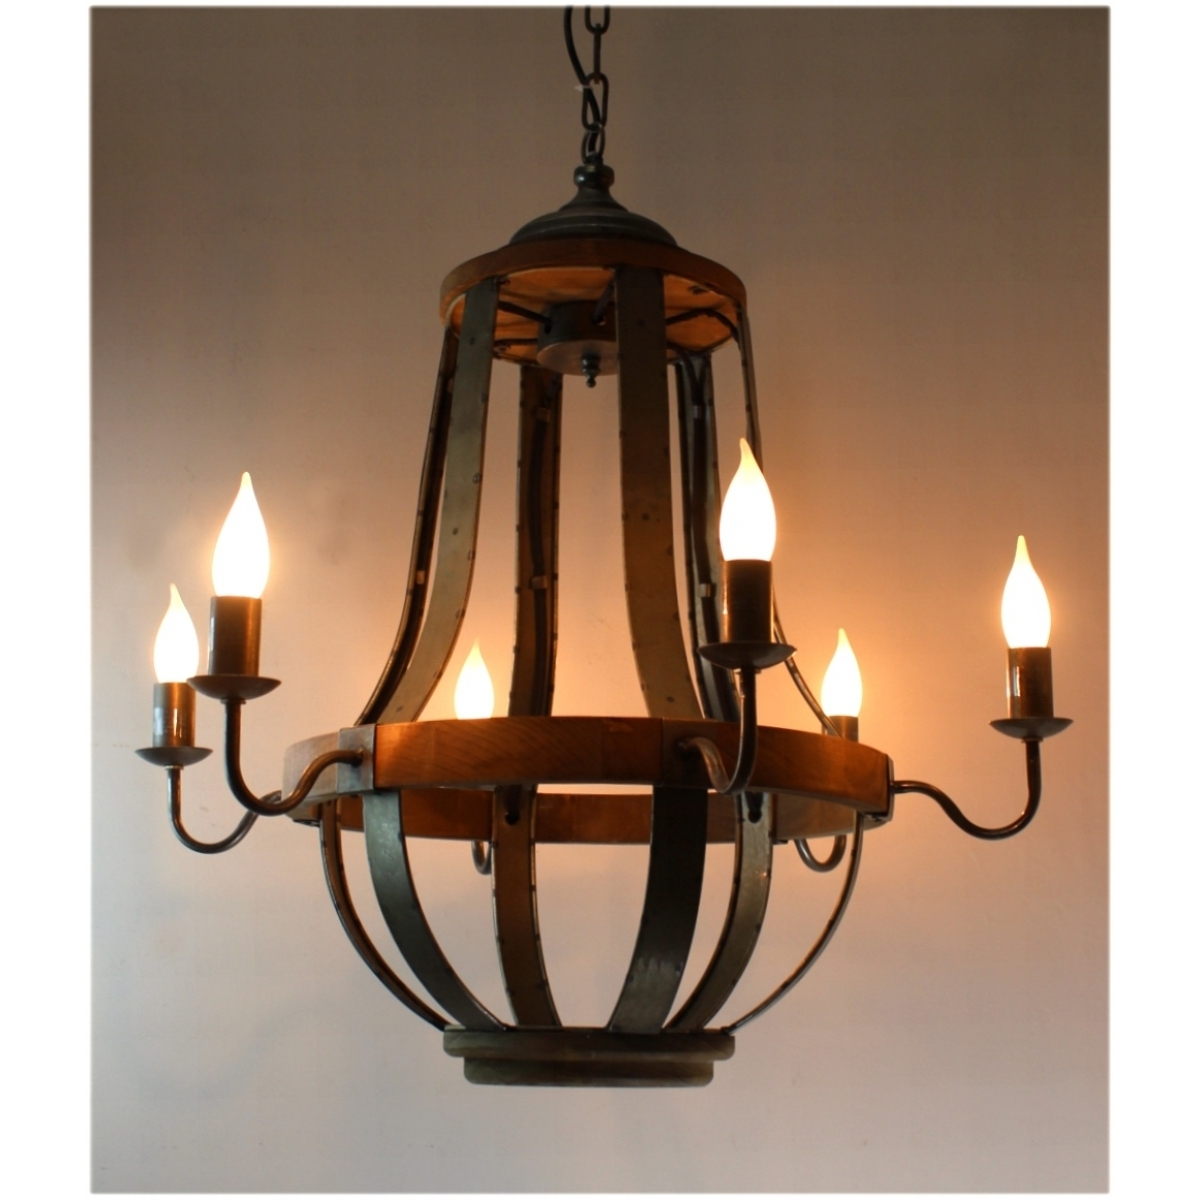 Most Recent $579 Iron Strap And Aged Wood Chandelier French Country Vintage Inside Vintage Style Chandelier (View 12 of 20)